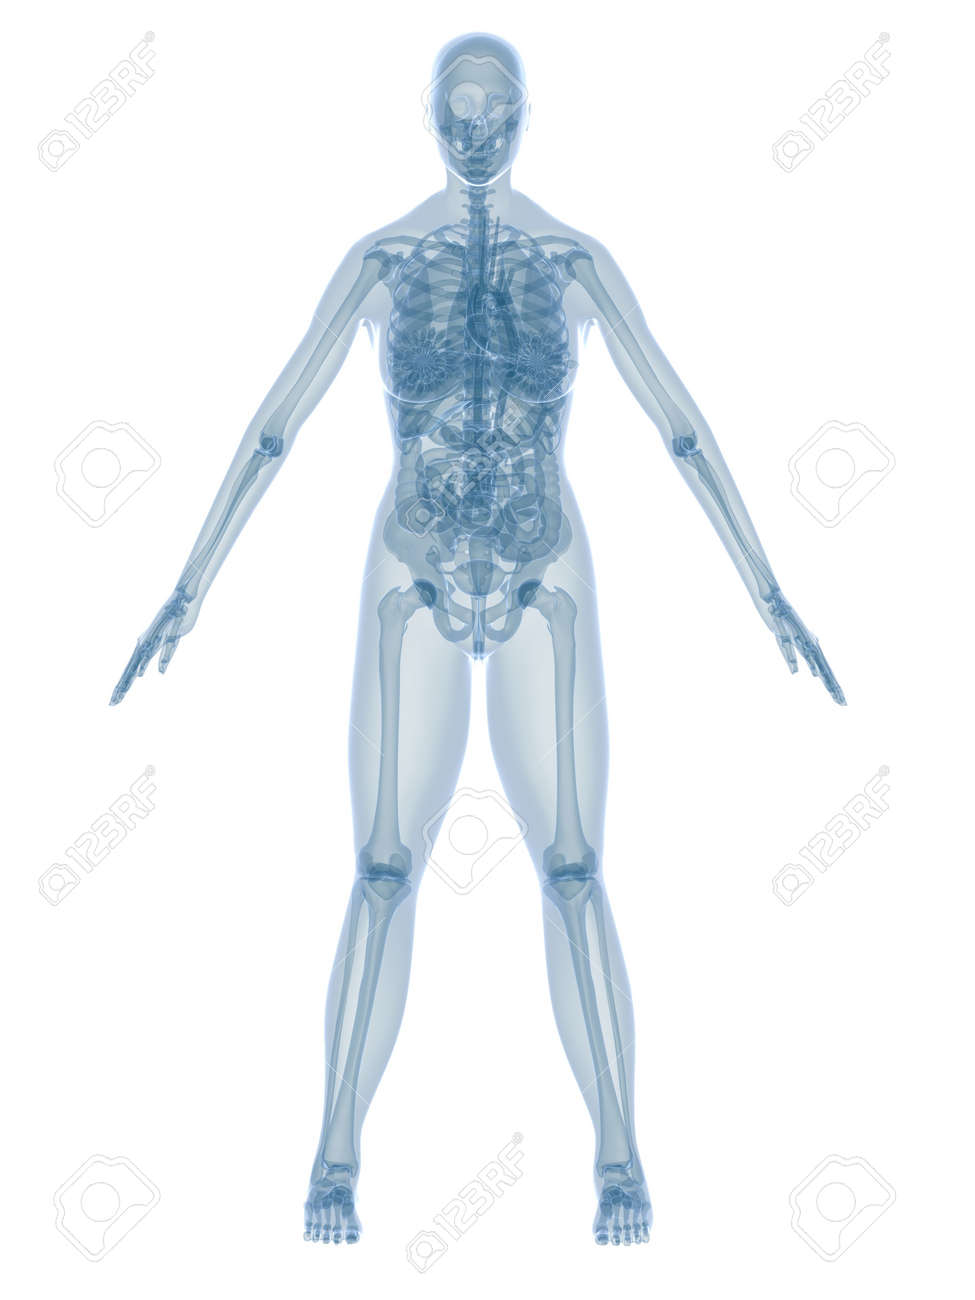 female anatomy Stock Photo - 2846122